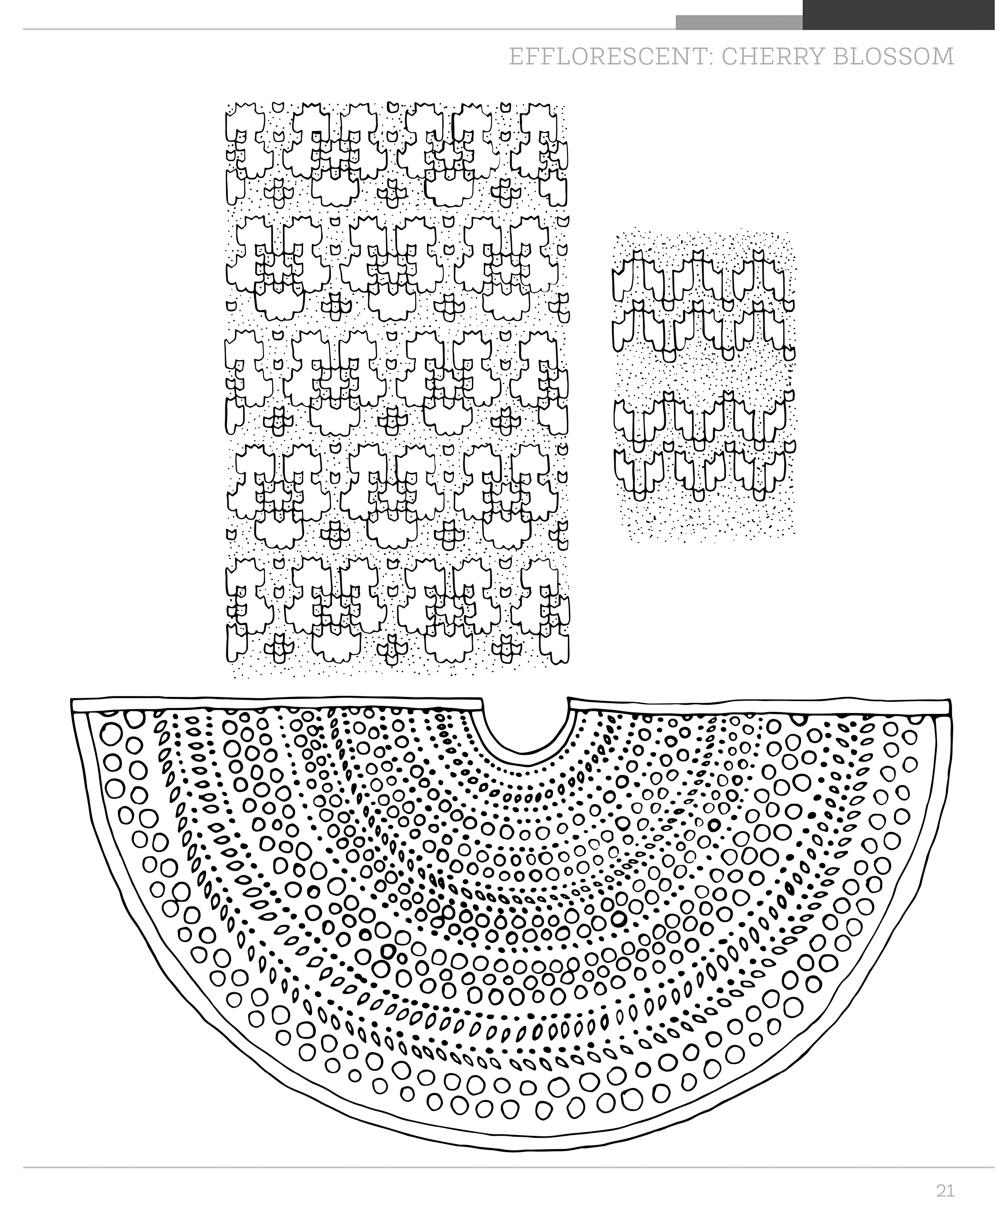 Shawl spread showing colouring-in illustration of Efflorescent shawl pictured from a distance